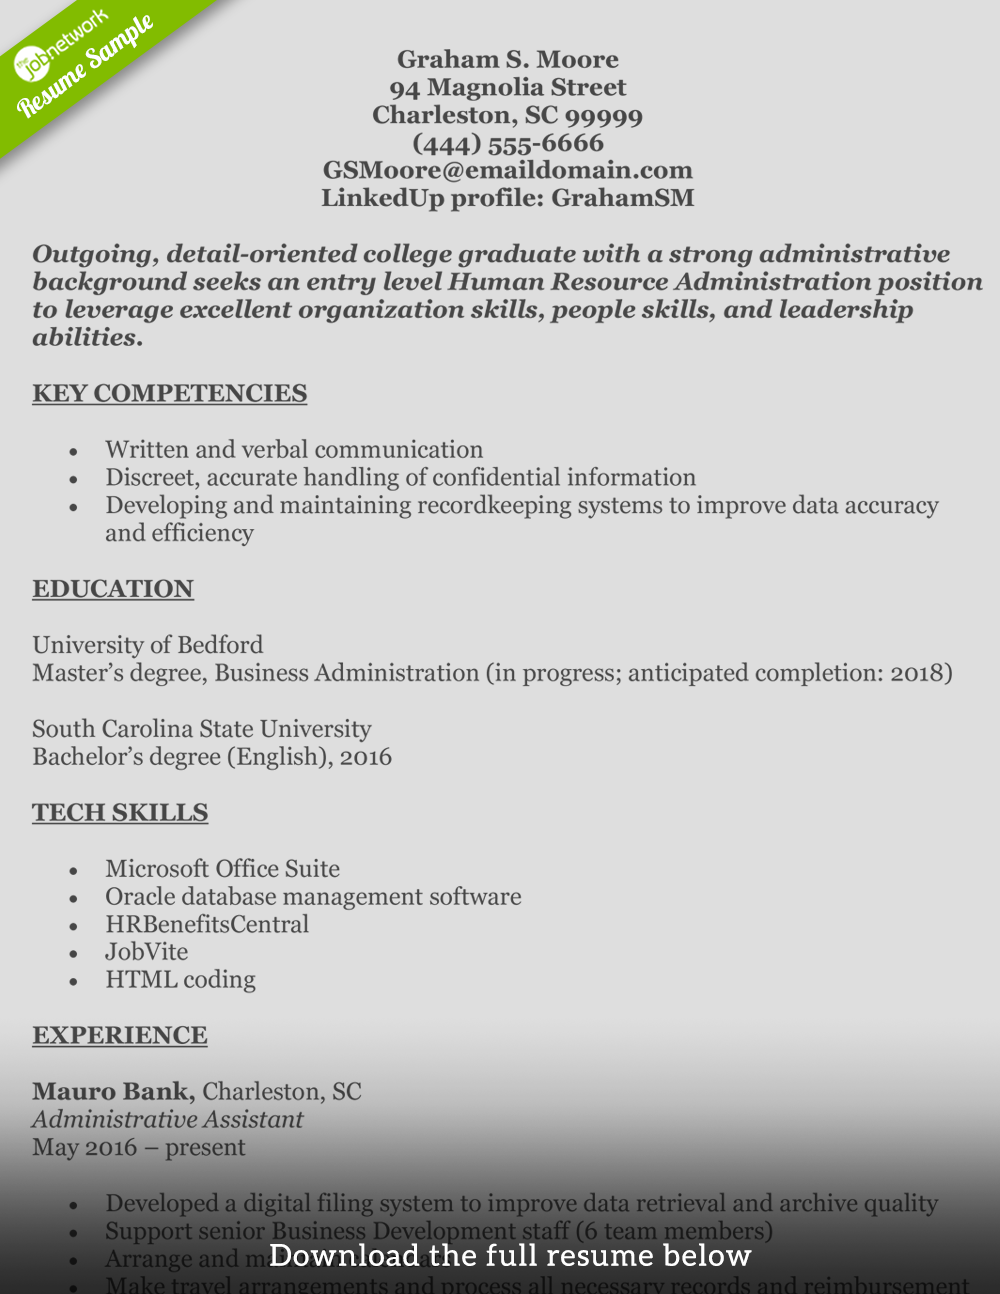 Human Resources Resume Graham. Download This Resume In Ms Word